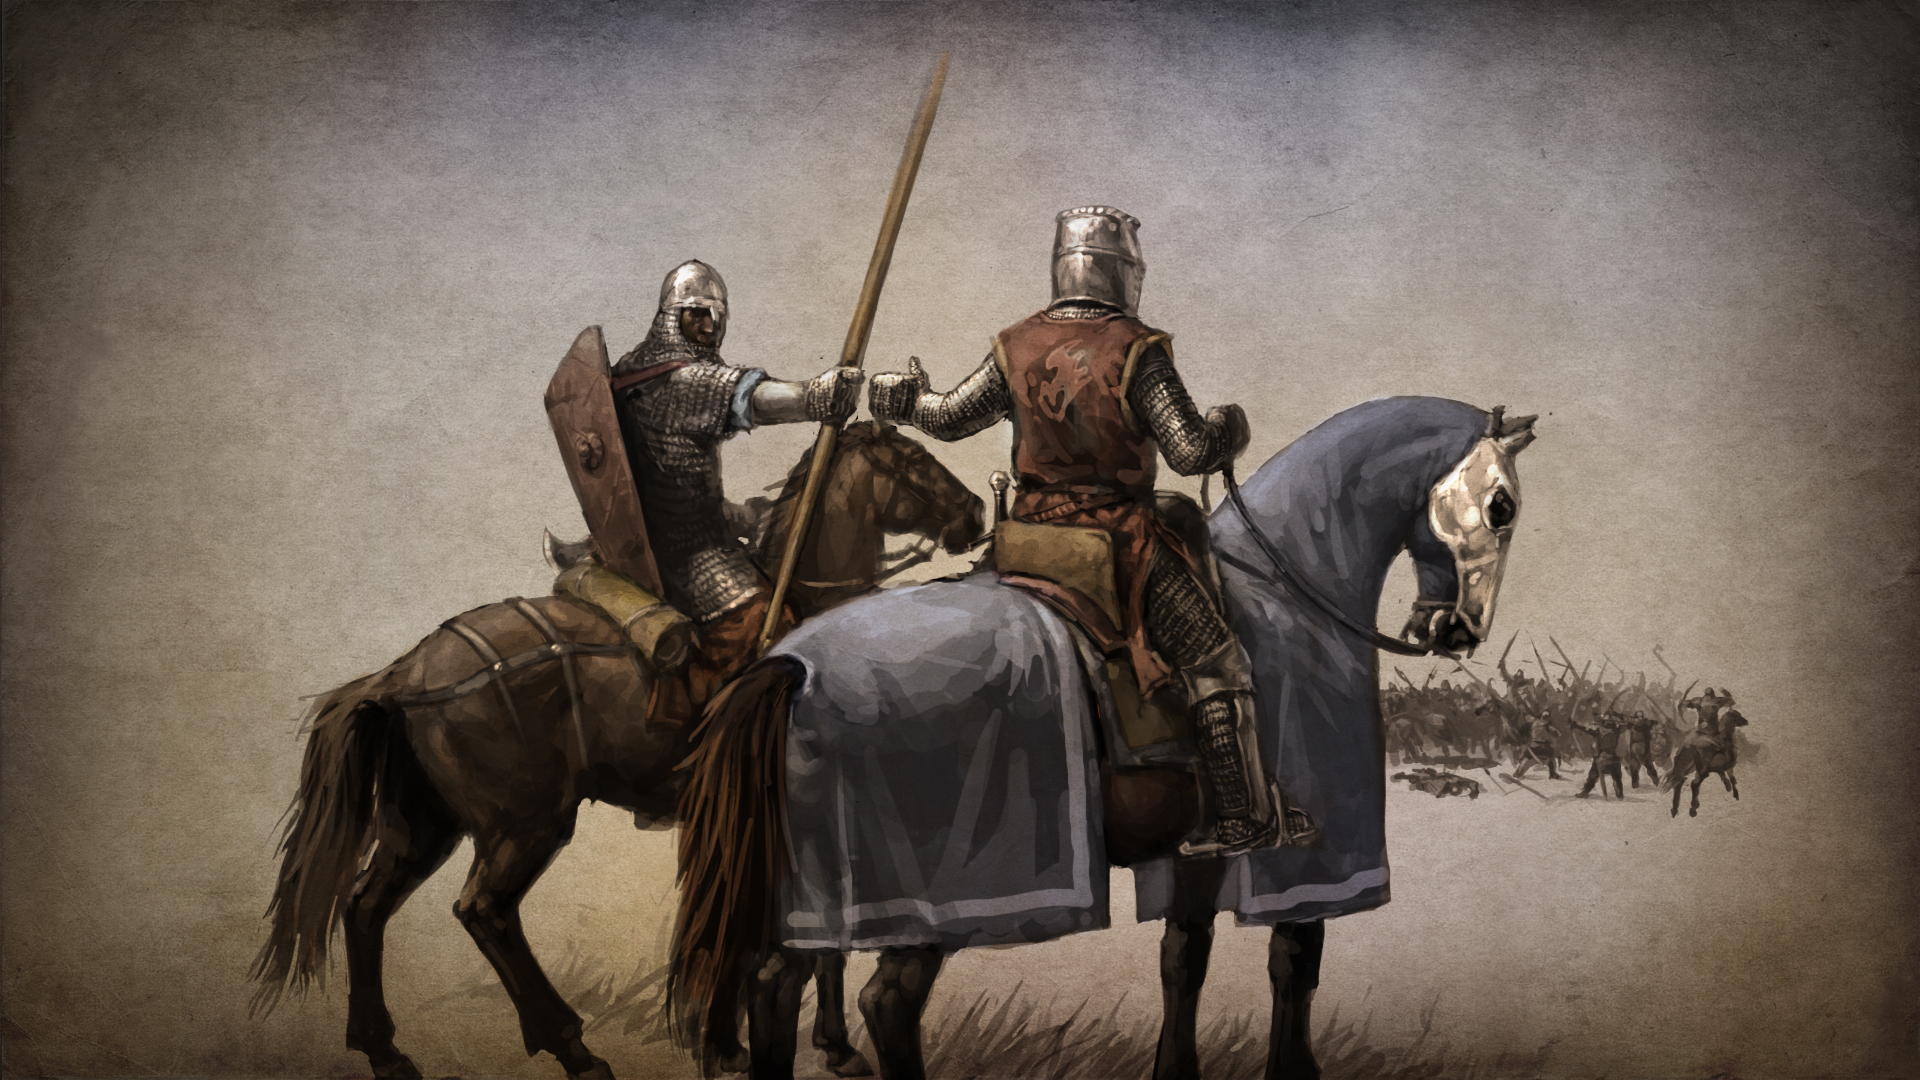 Most viewed Mount & Blade: Warband wallpapers | 4K Wallpapers